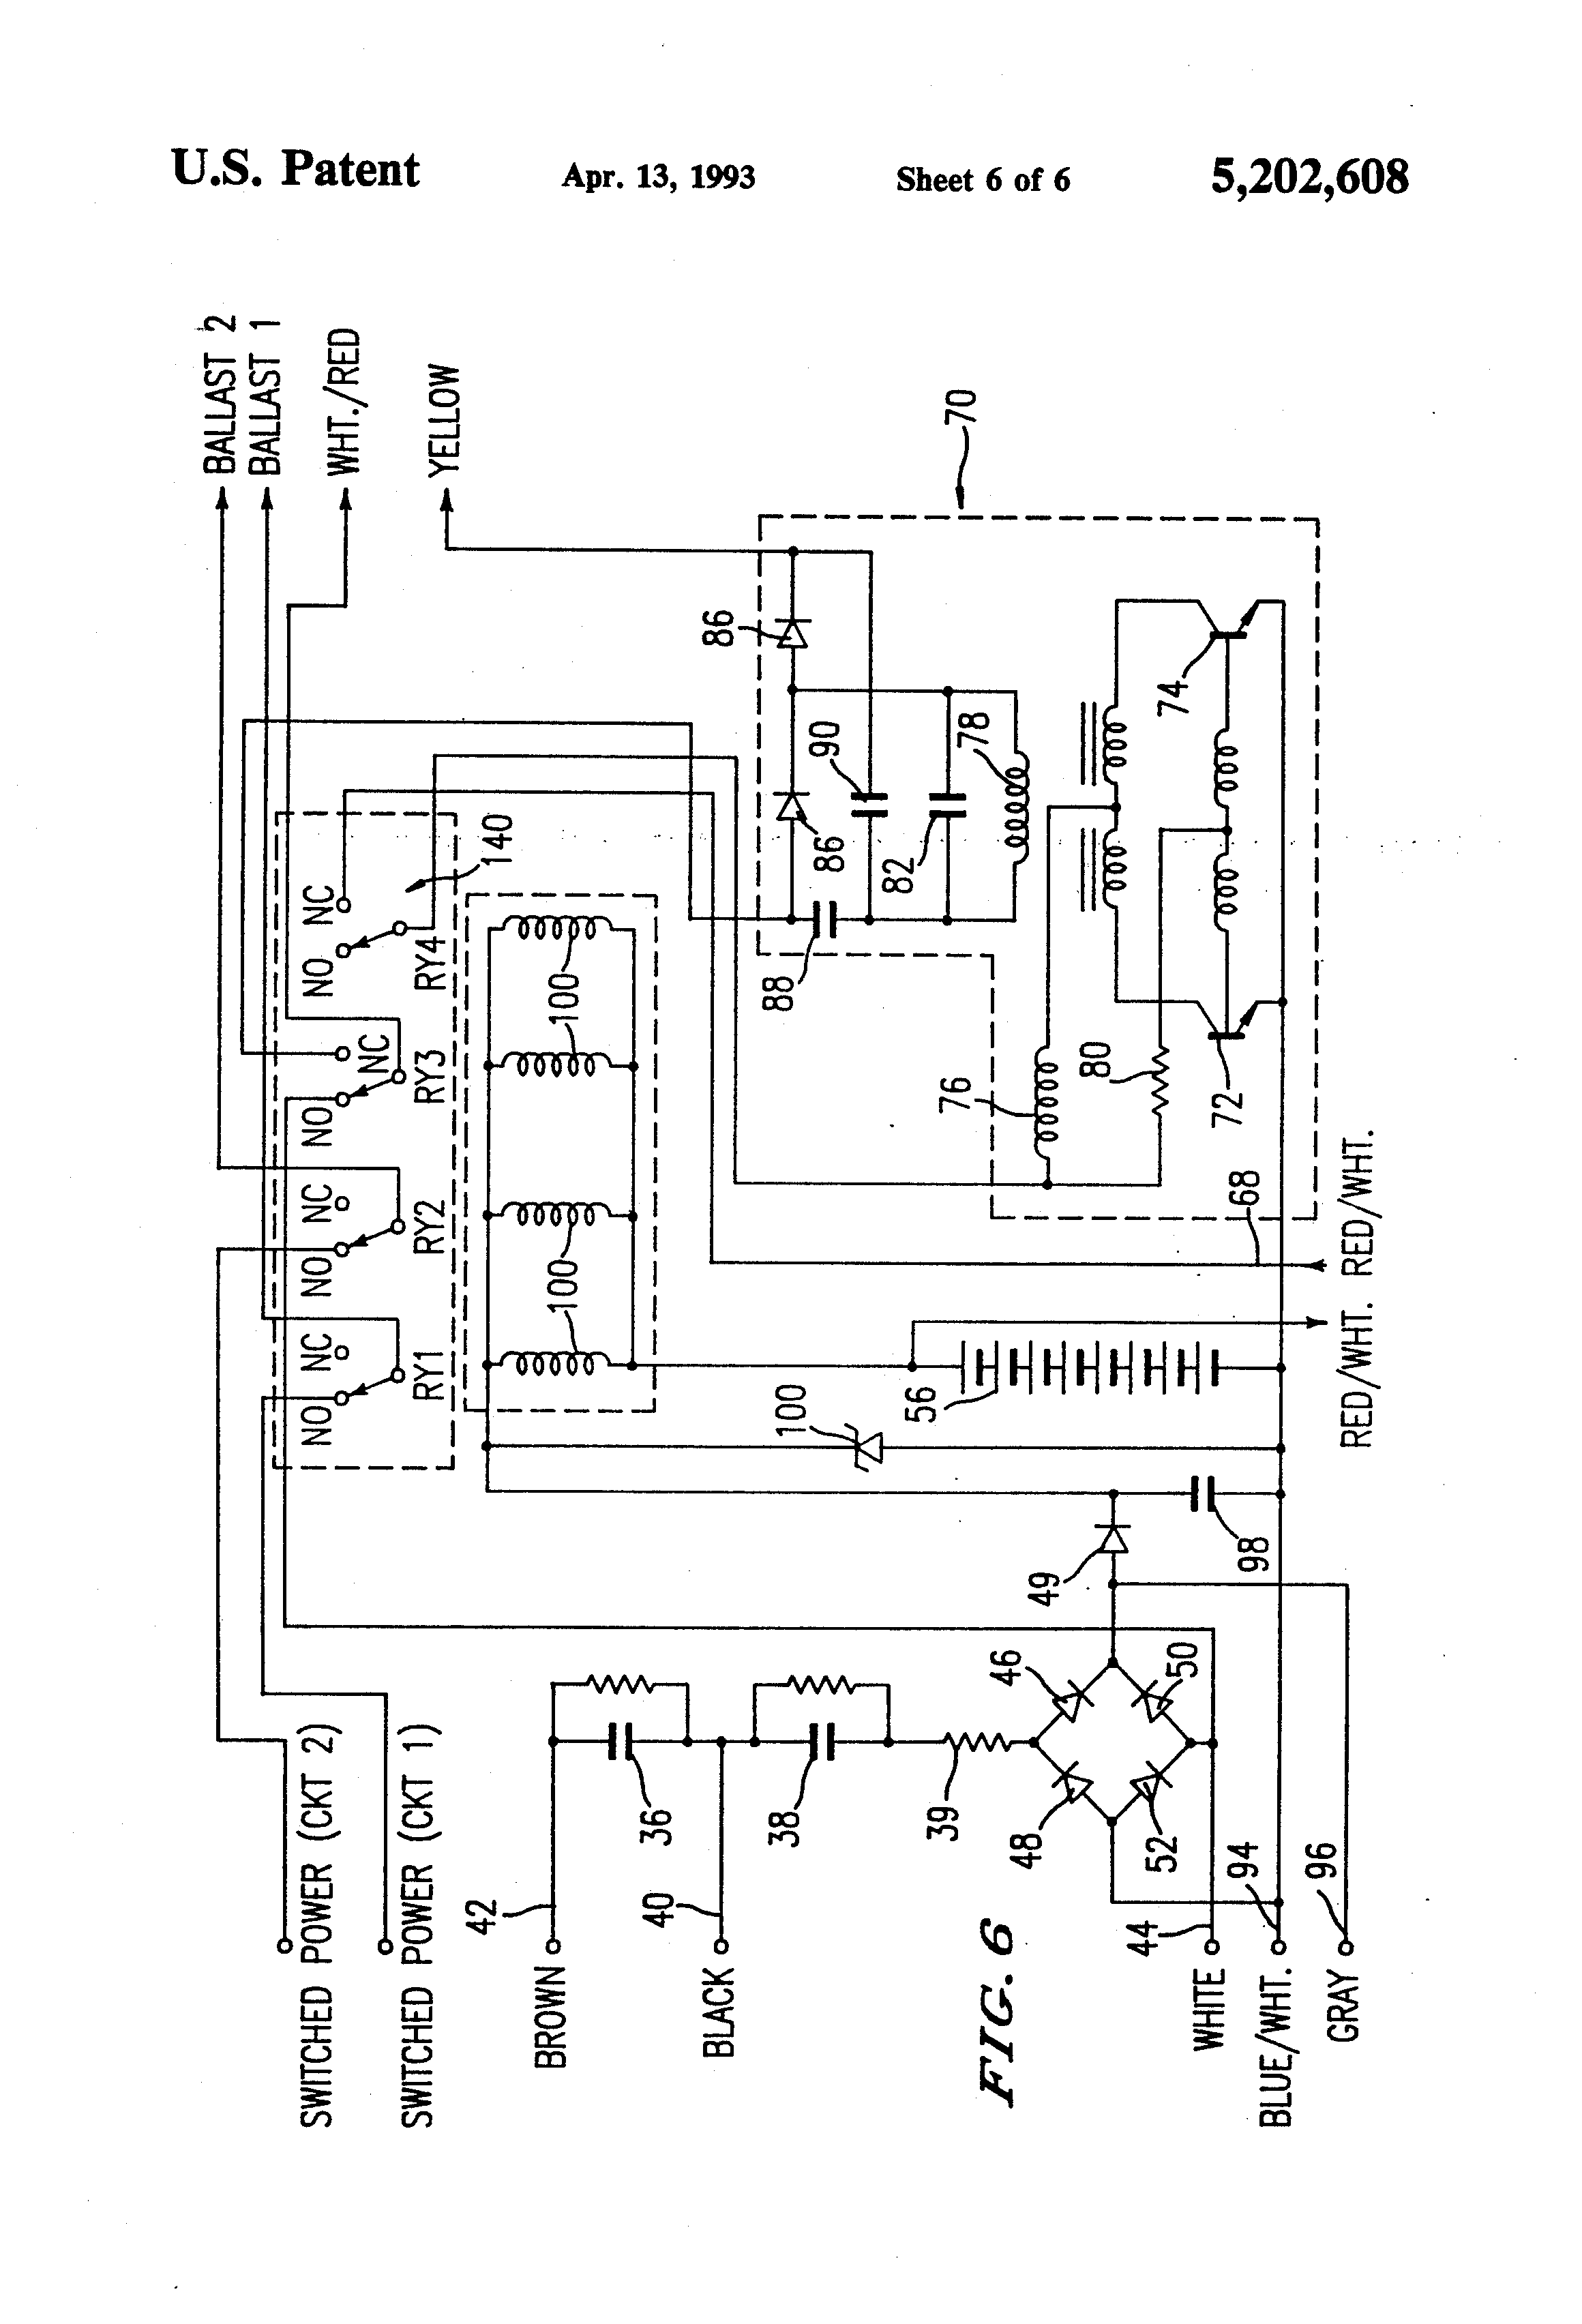 US5202608 6 bodine emergency ballast wiring diagram bodine wiring diagrams bodine b50 emergency ballast wiring diagram at alyssarenee.co